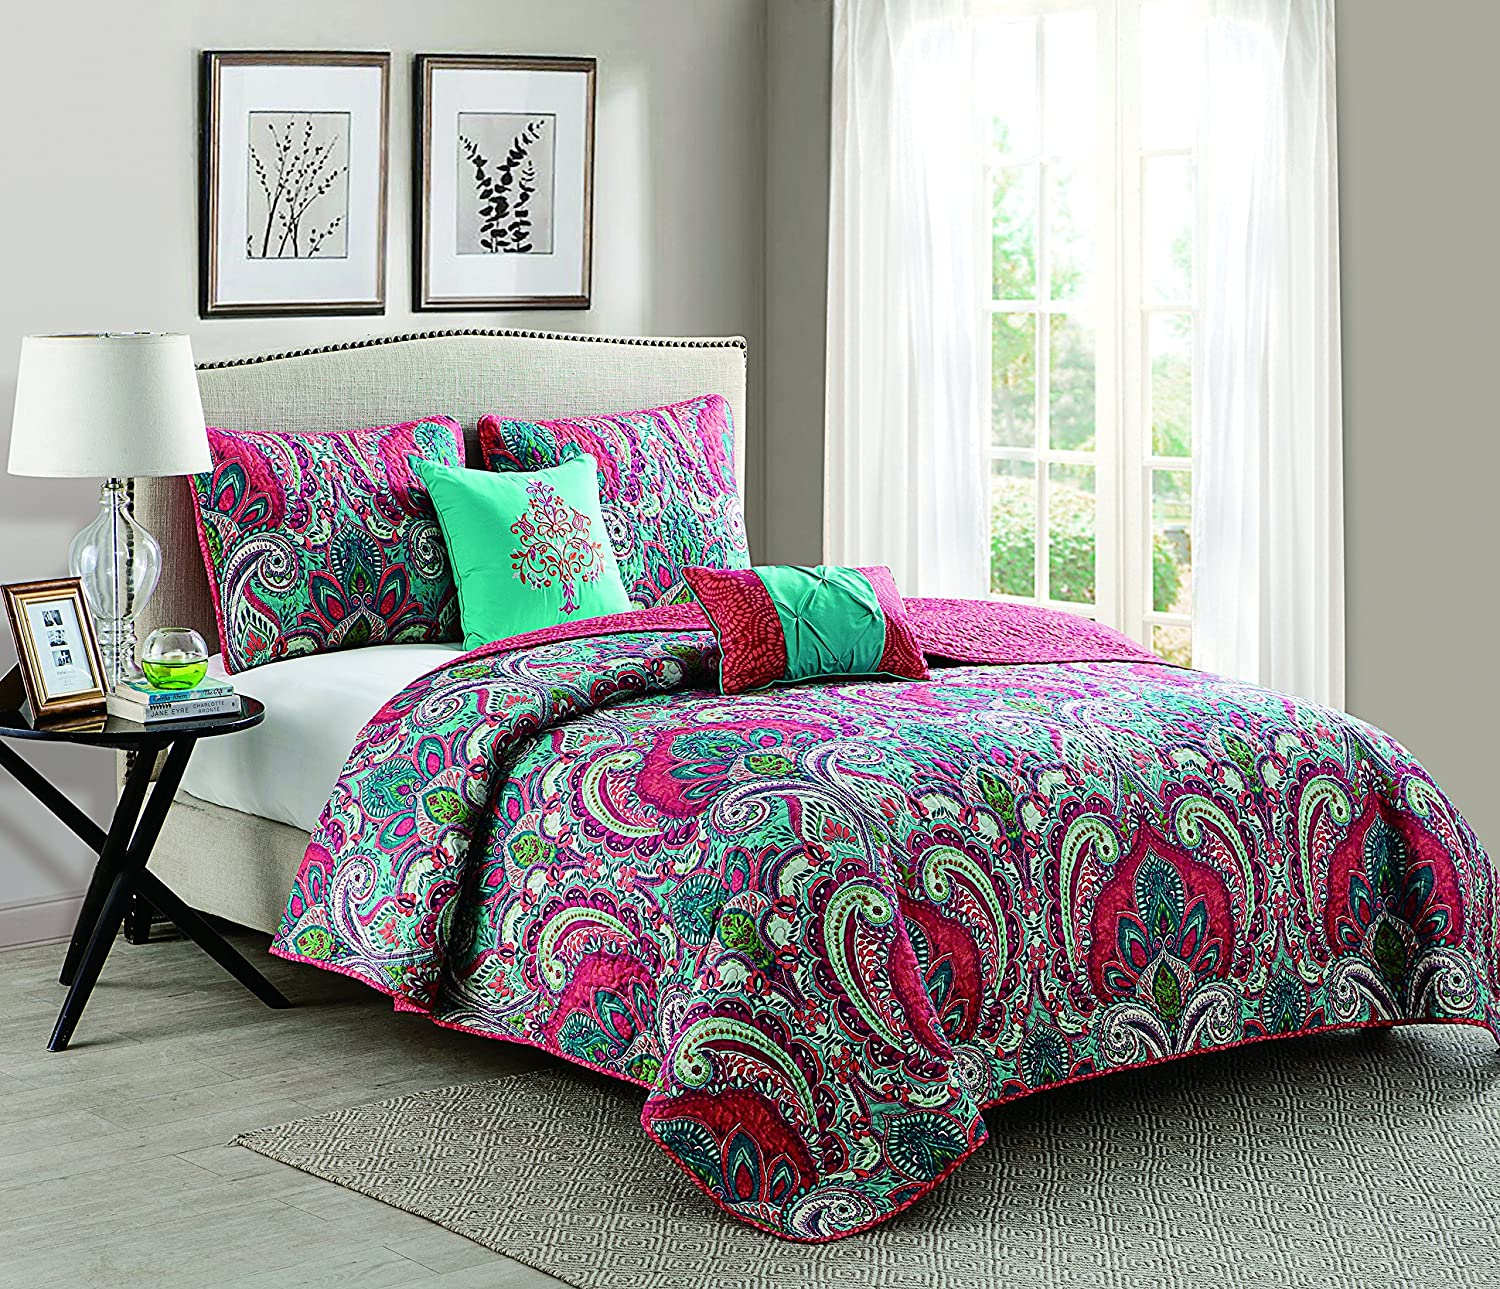 VCNY Home Casa Re'al Damask Reversible 5-Piece Quilt Set, King, Multi